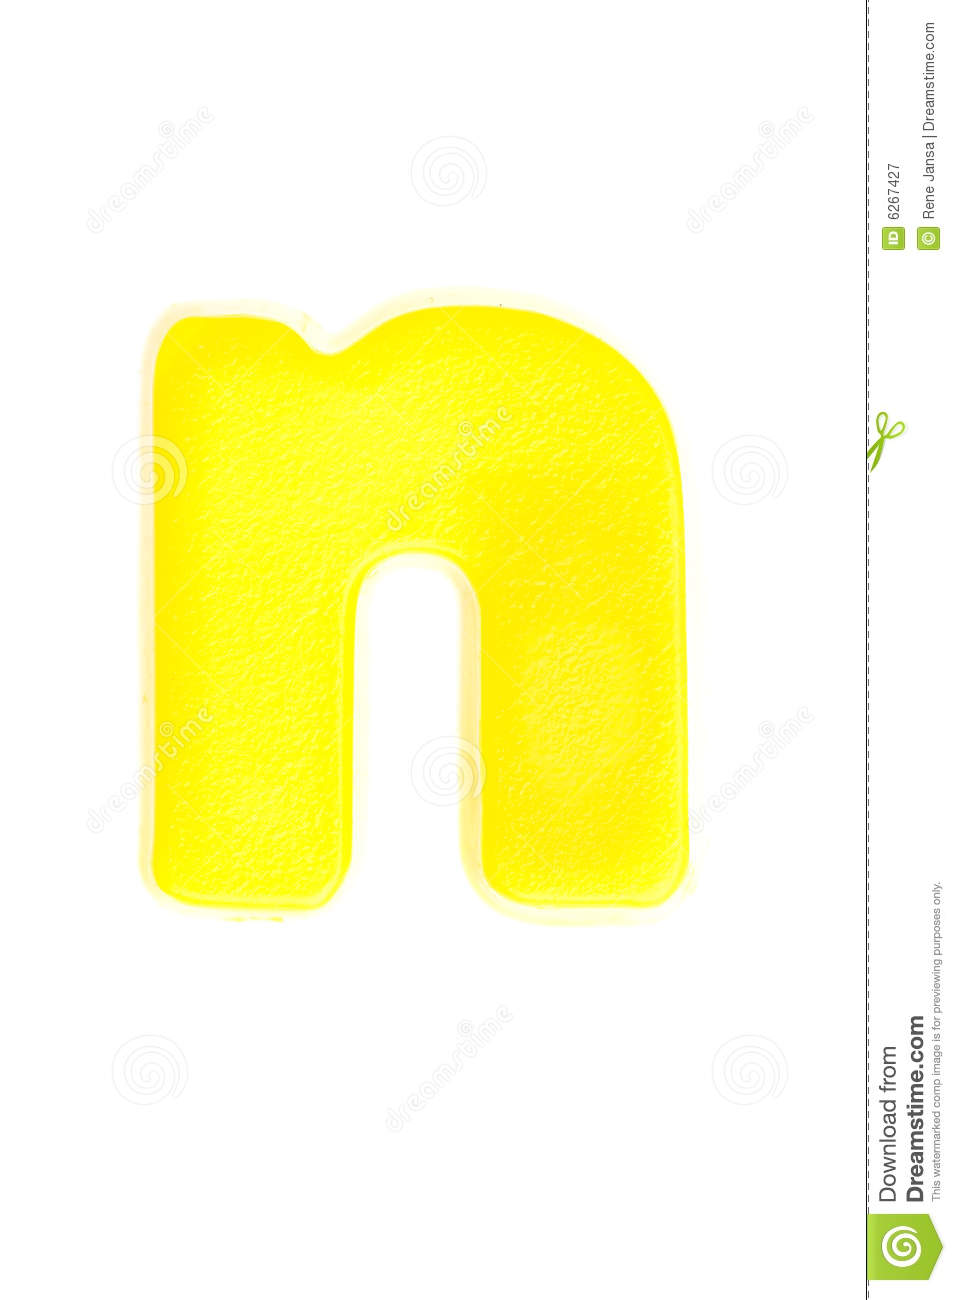 yellow letter n stock image image of magnetic  yellow letter l clipart for preschool letter l clipart black and white